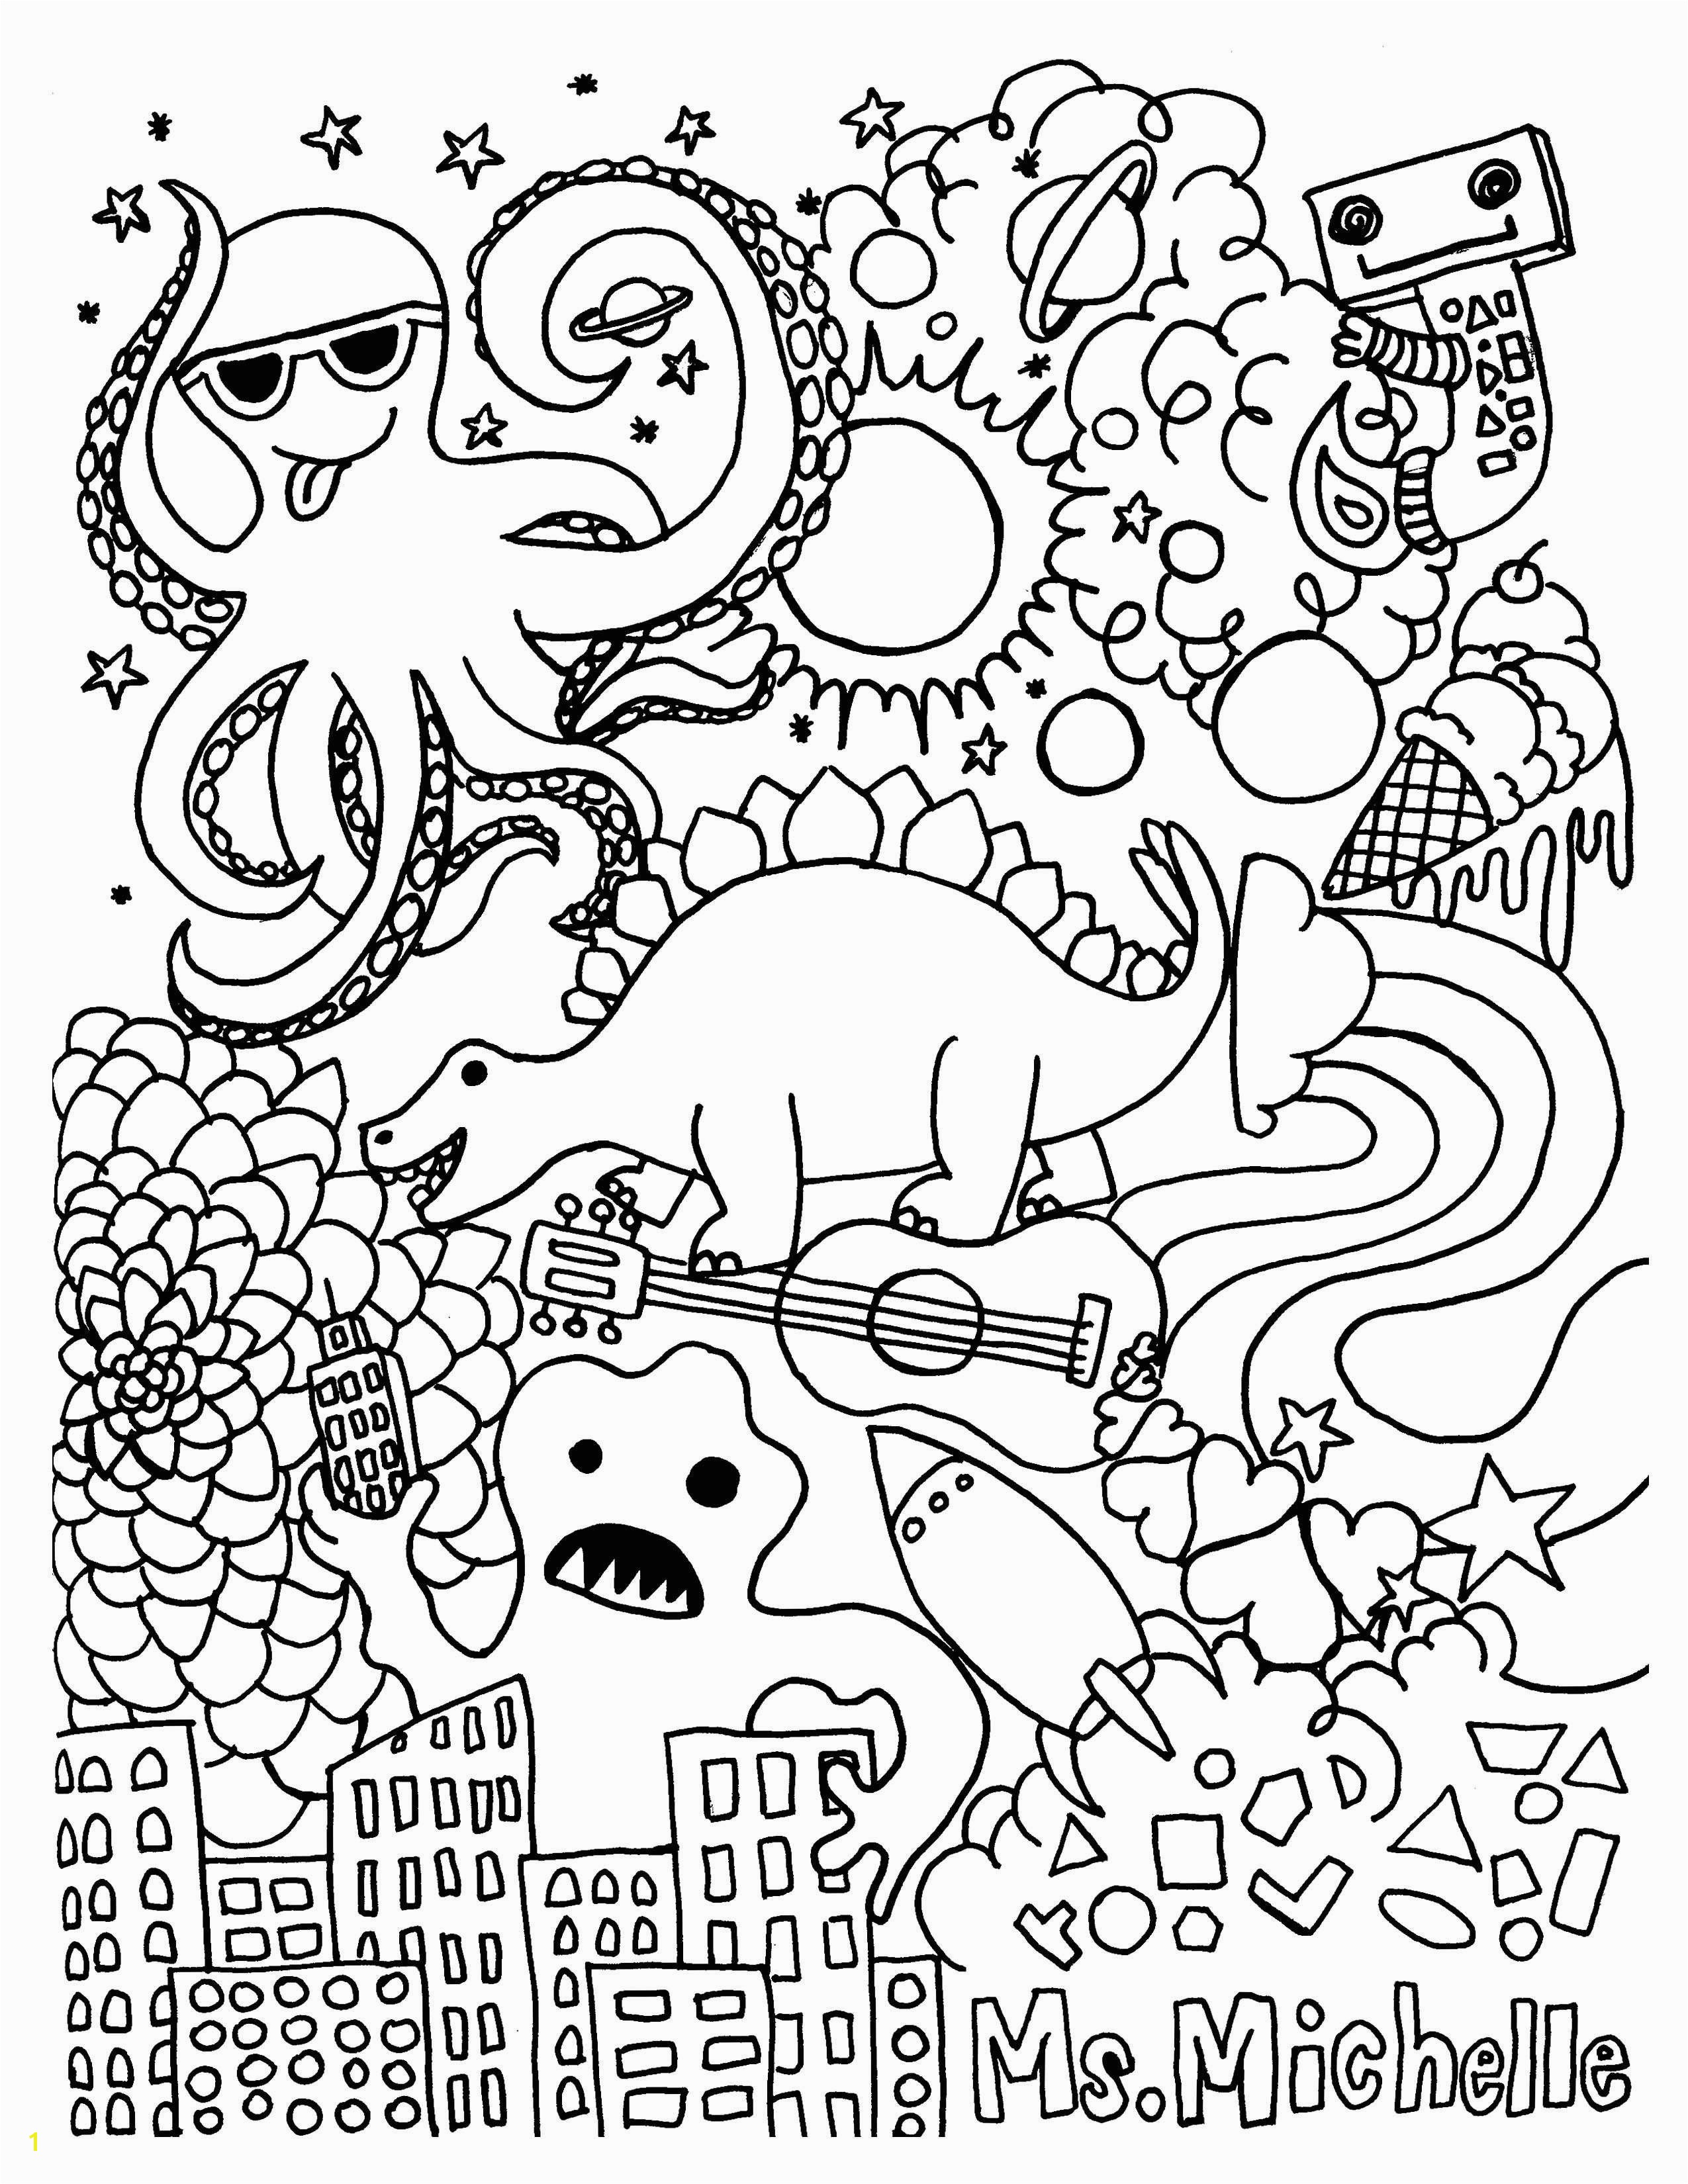 Fun Coloring Pages For Boys Printable Coloring Pages For Kidscoloring Pages For Girls To Print